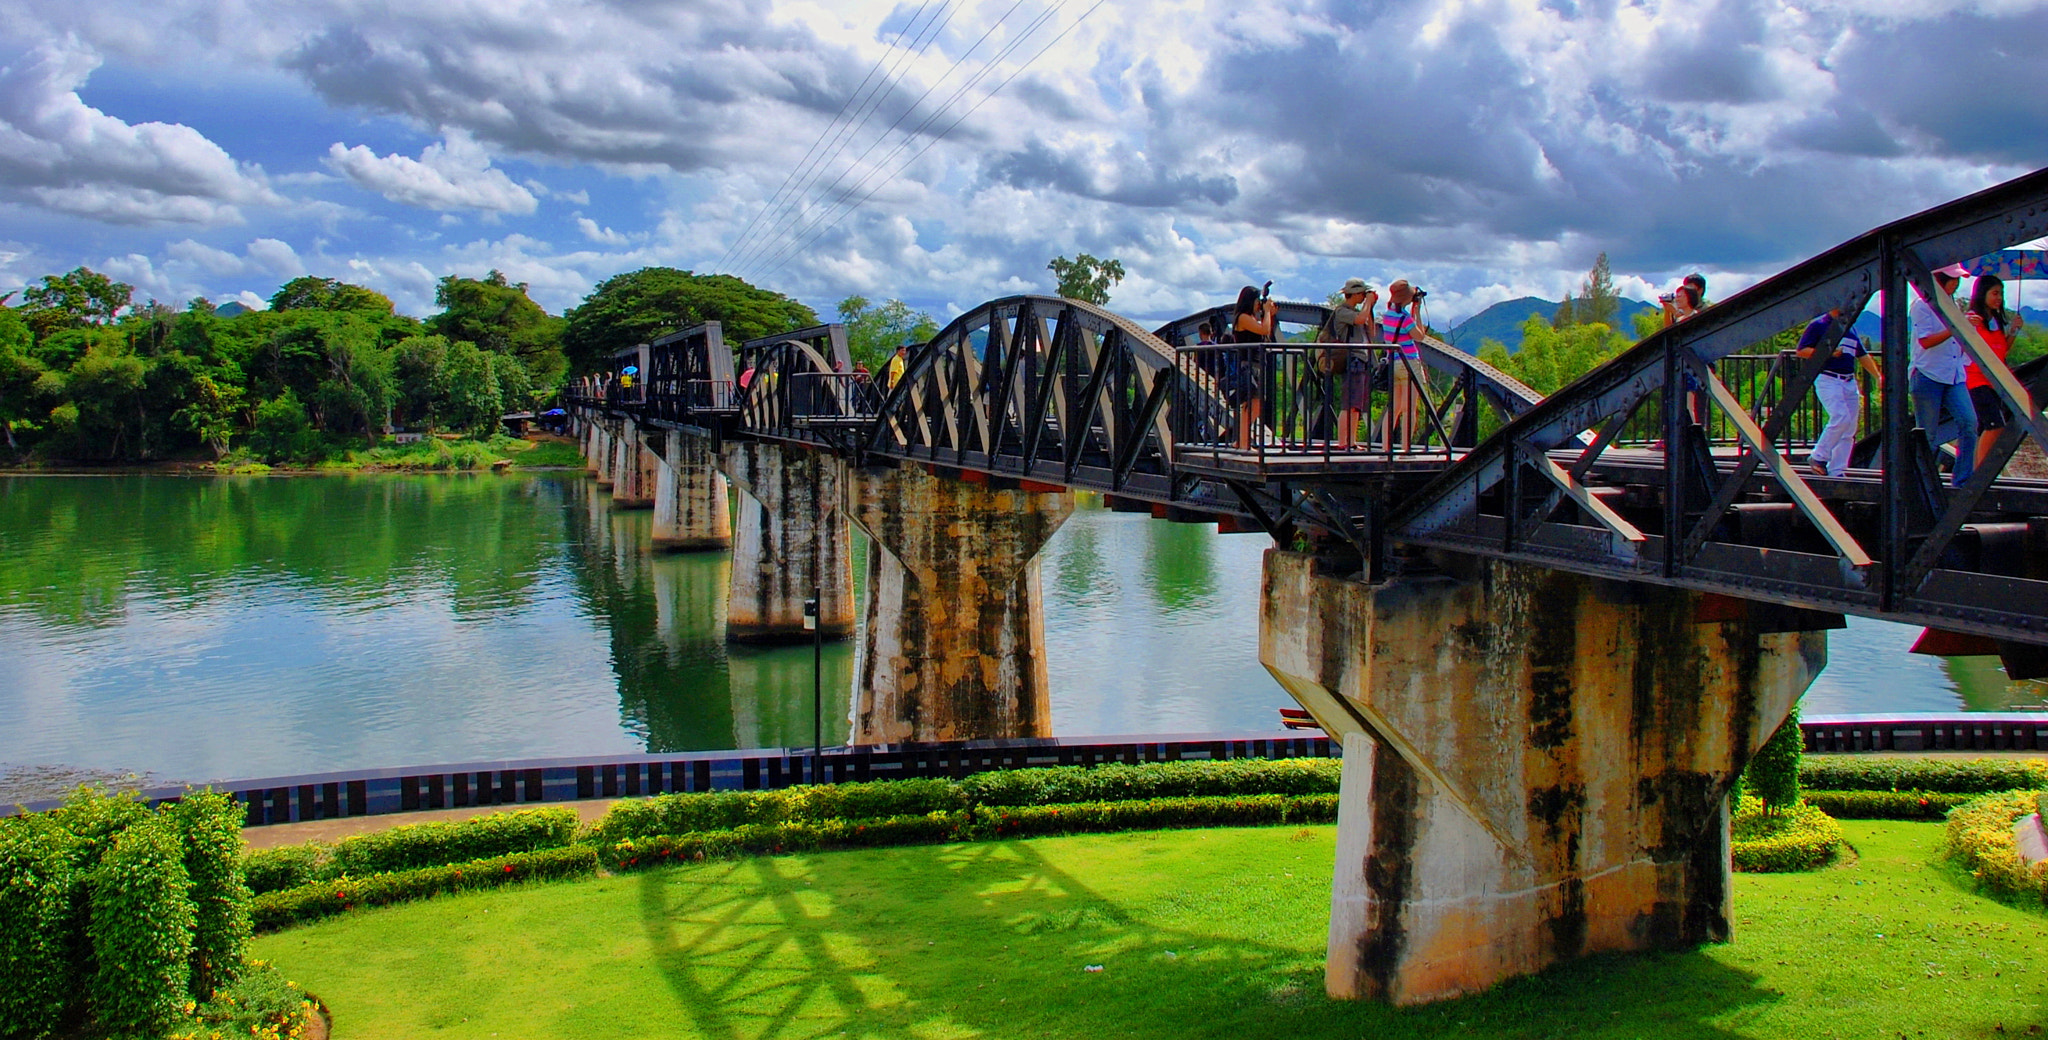 Photograph The Bridge on the River Kwai by Sheffi M. on 500px